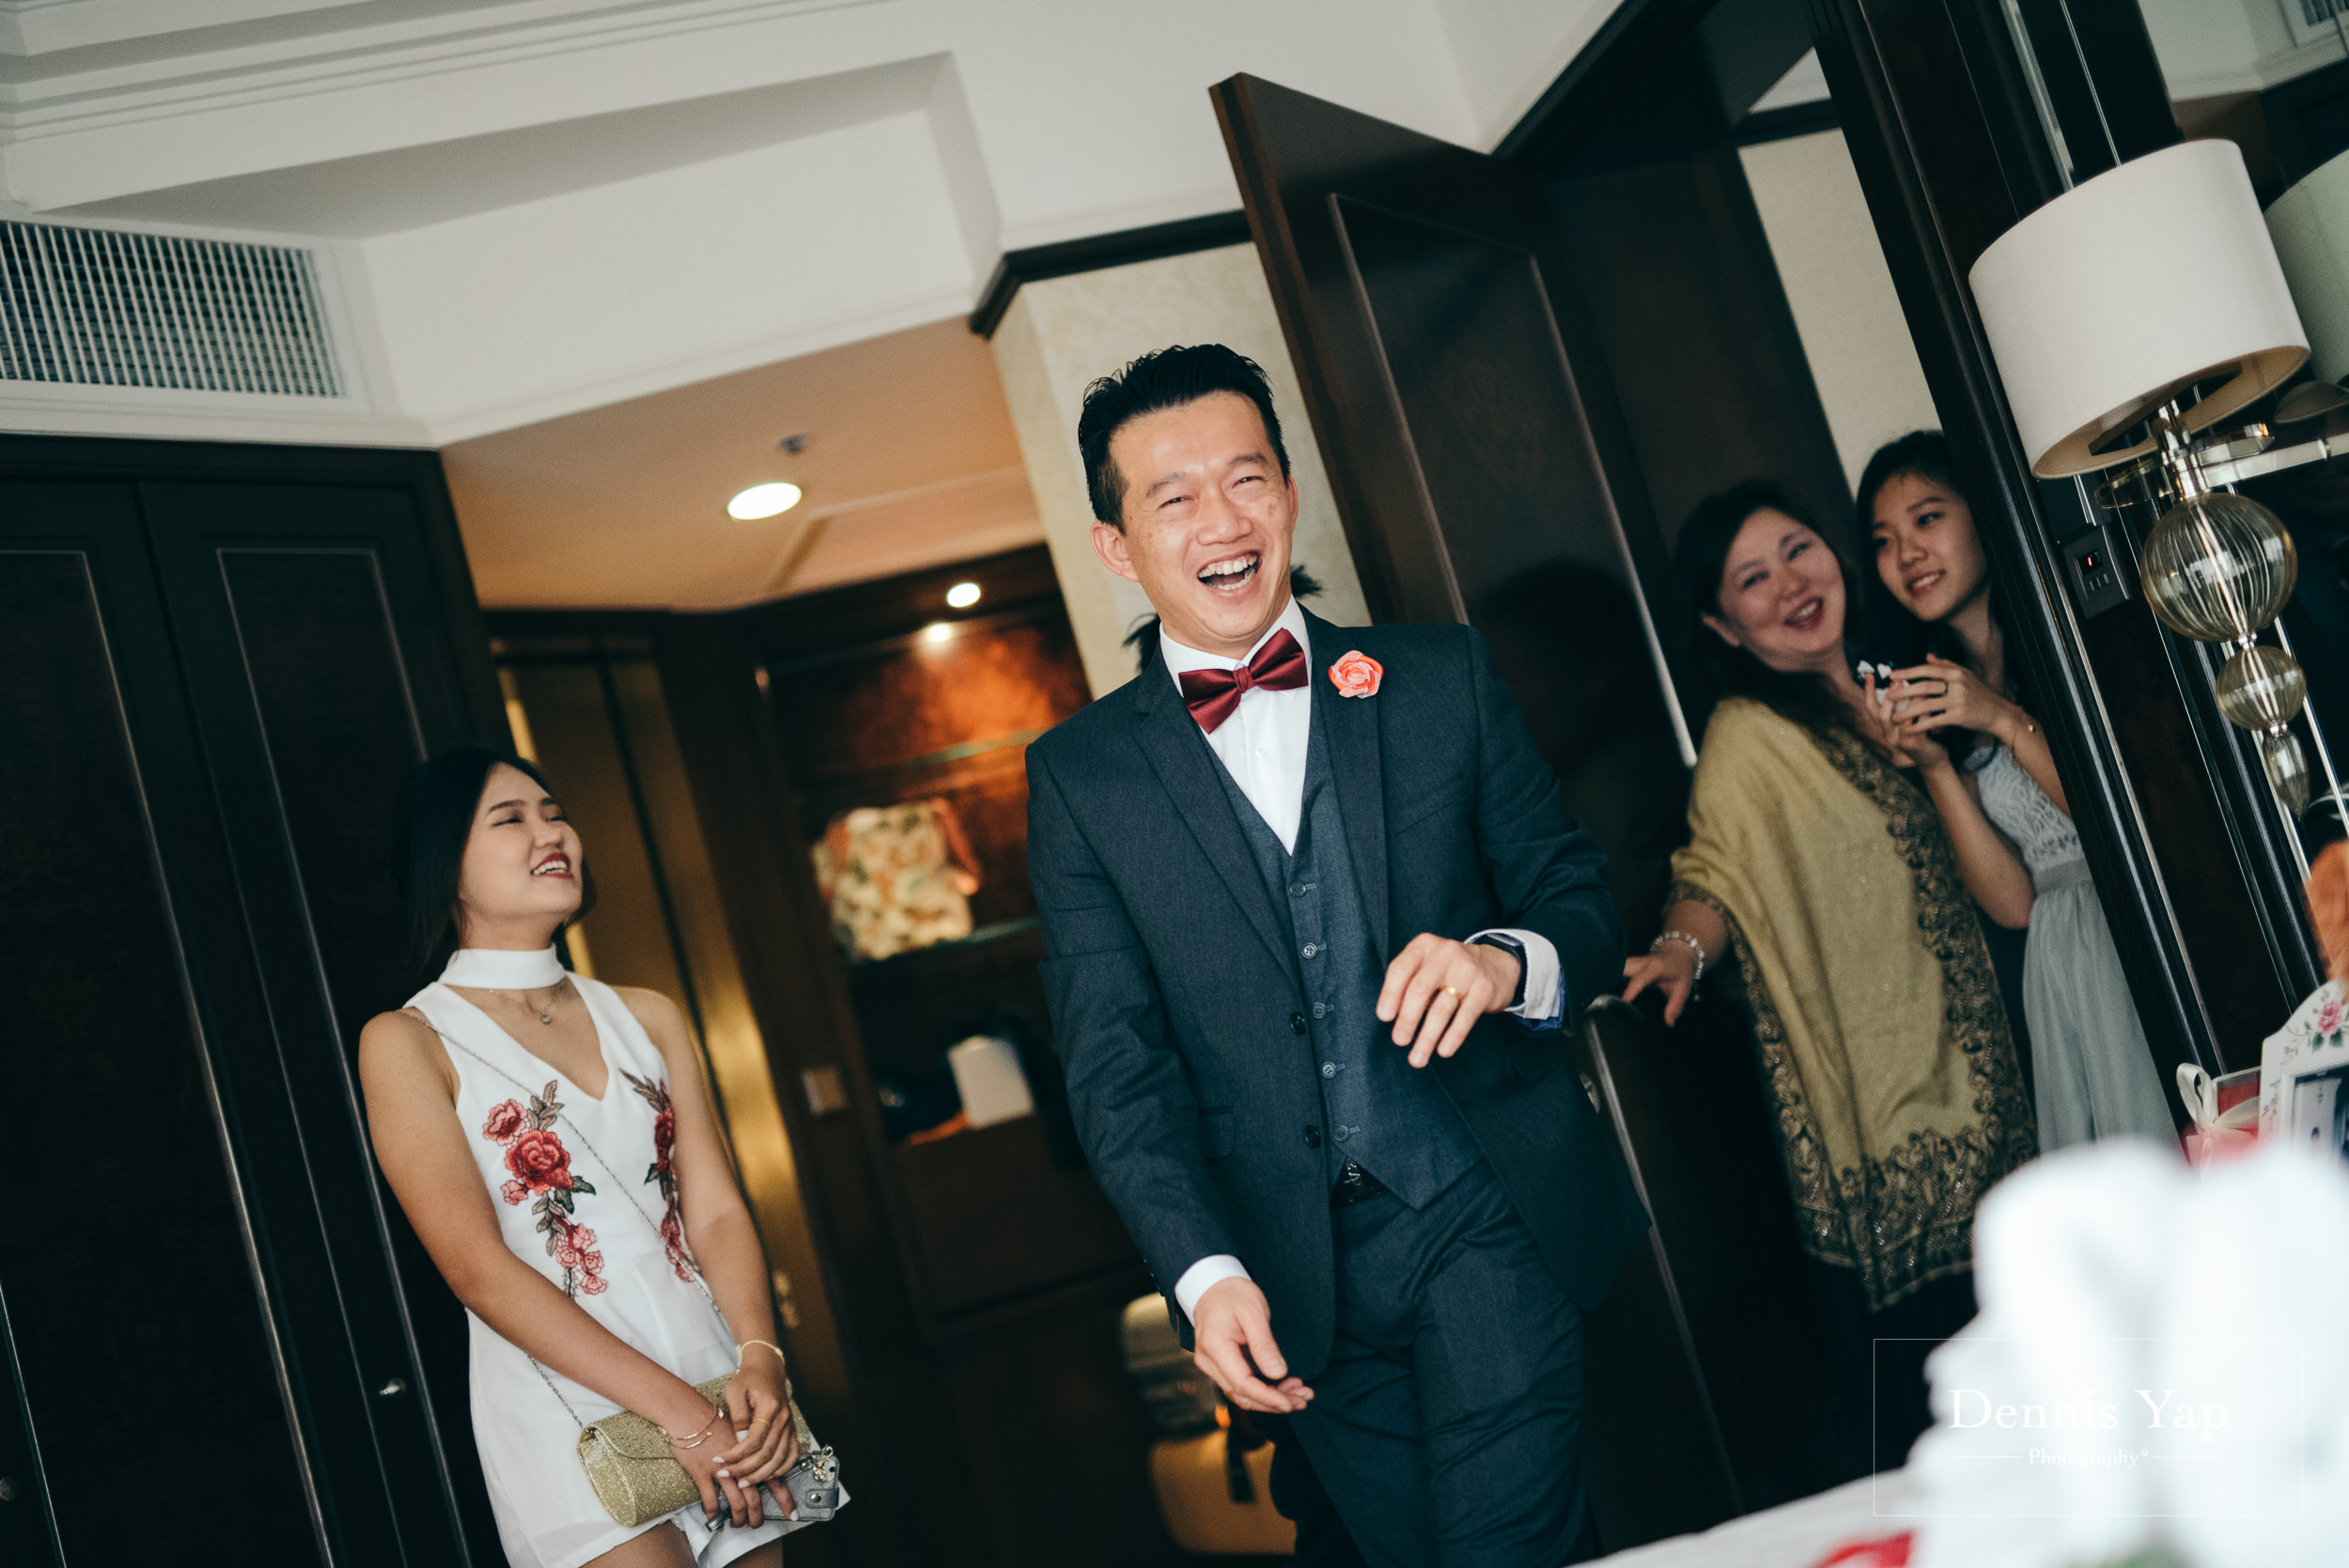 boon weng cyndy simple wedding gate crash luncheon shangrila kuala lumpur red traditional dennis yap photography-114.jpg